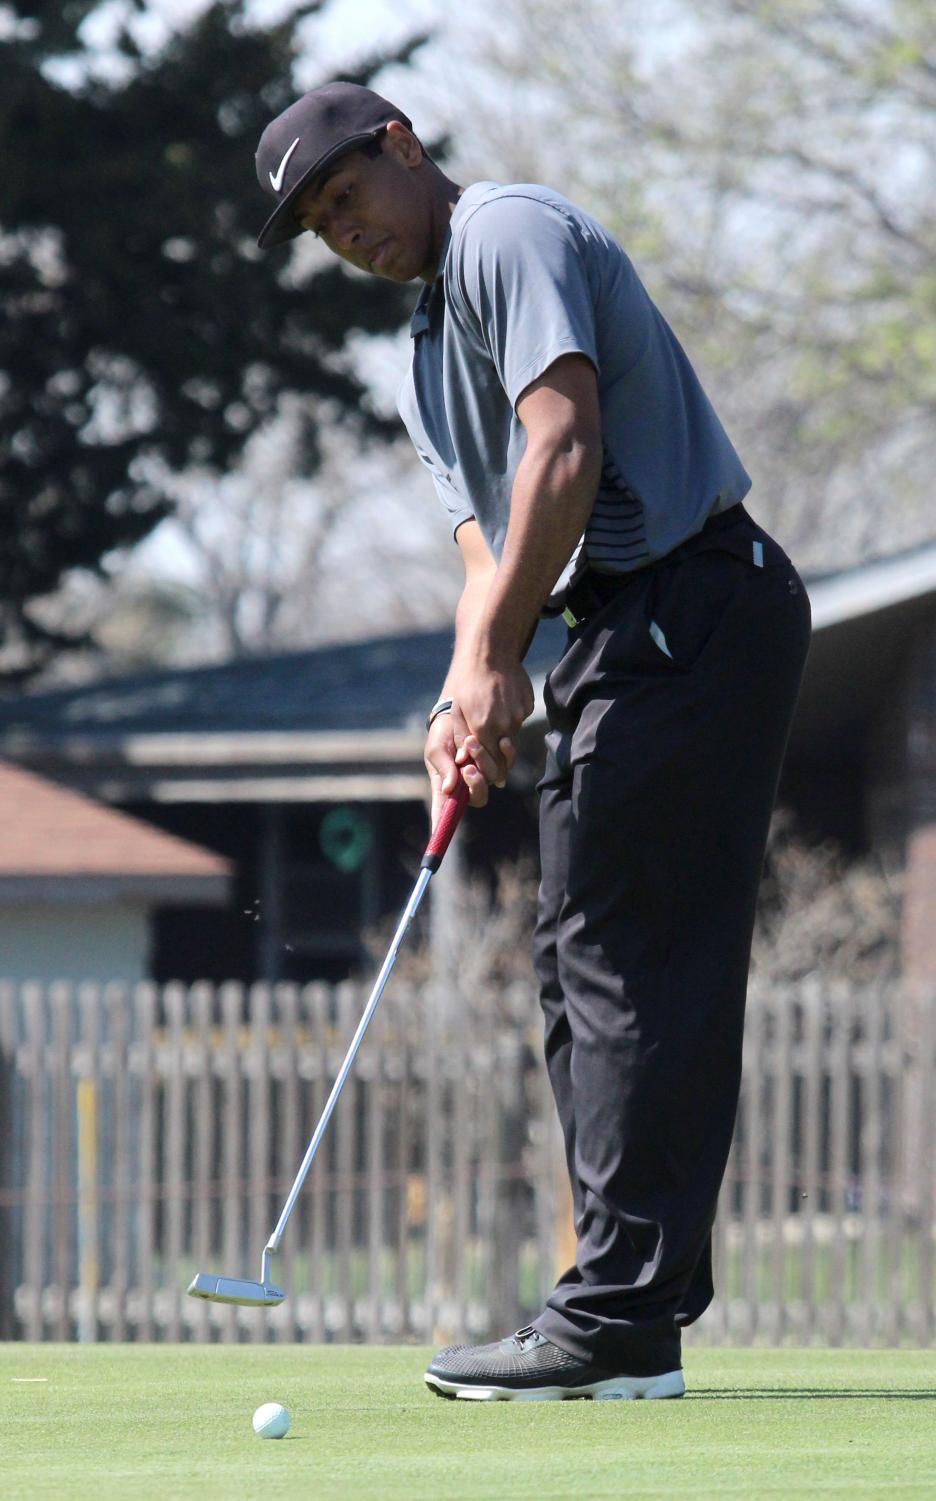 Junior Trey McCrae squares up on the green in a recent tournament at home. On May 14, McCrae won his sixth tournament of the season.